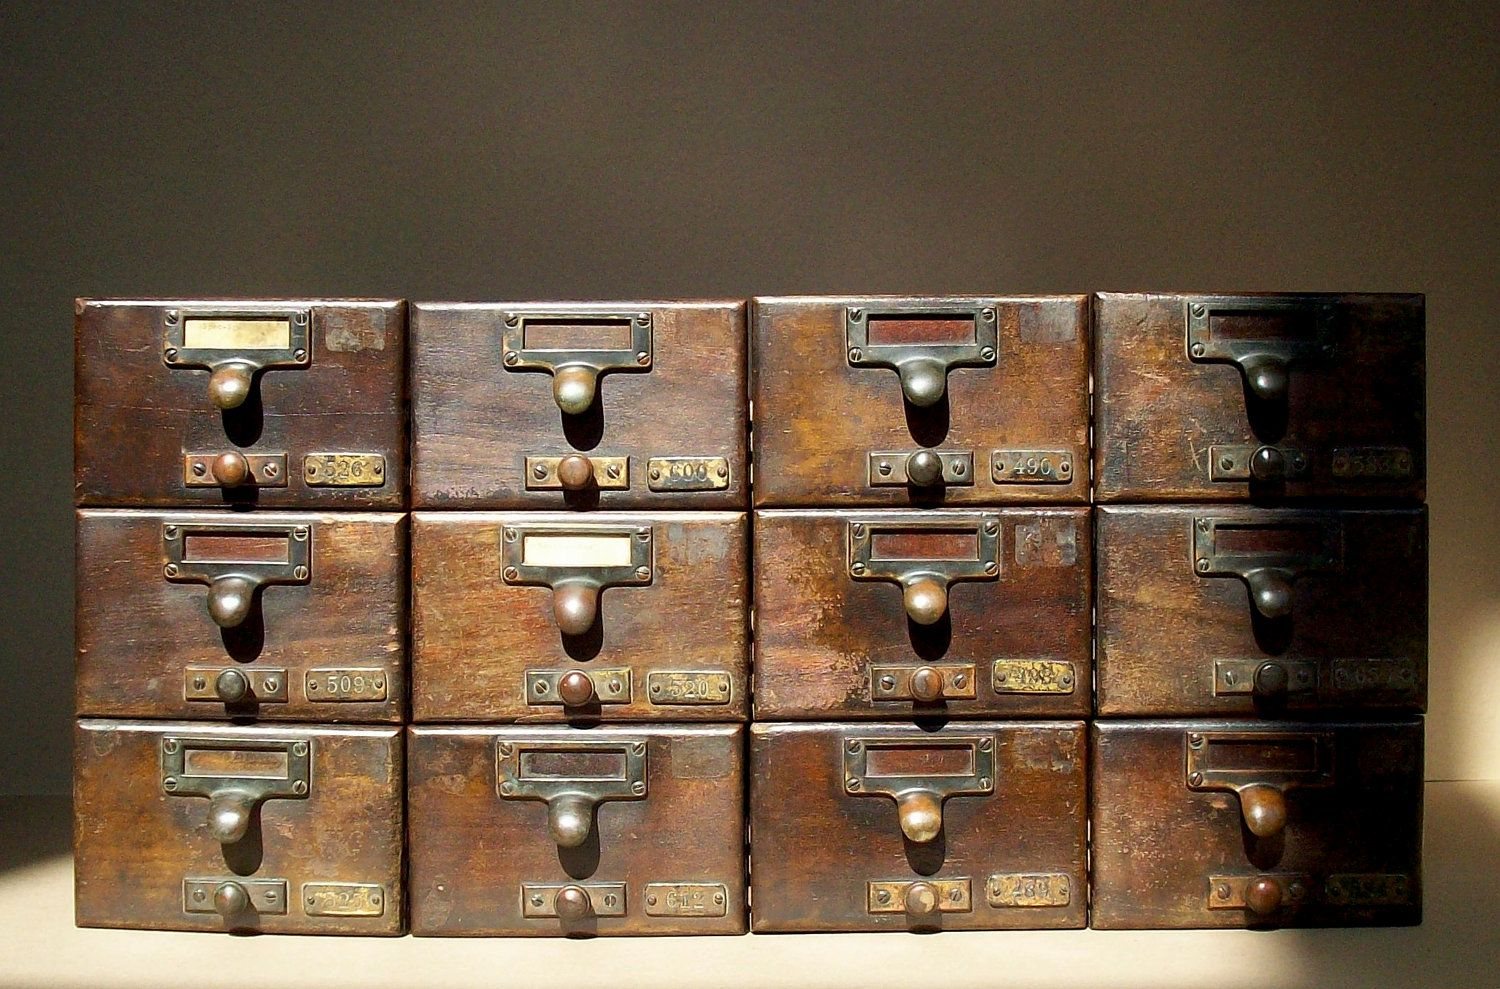 Art Photography Print / Vintage Library Card Catalog Drawers / Digital  Archival Print / Eerie Dark Moody Rustic by urgestudio USD) - Vintage Library Card Catalogue Drawer With Label Hardware / Wood